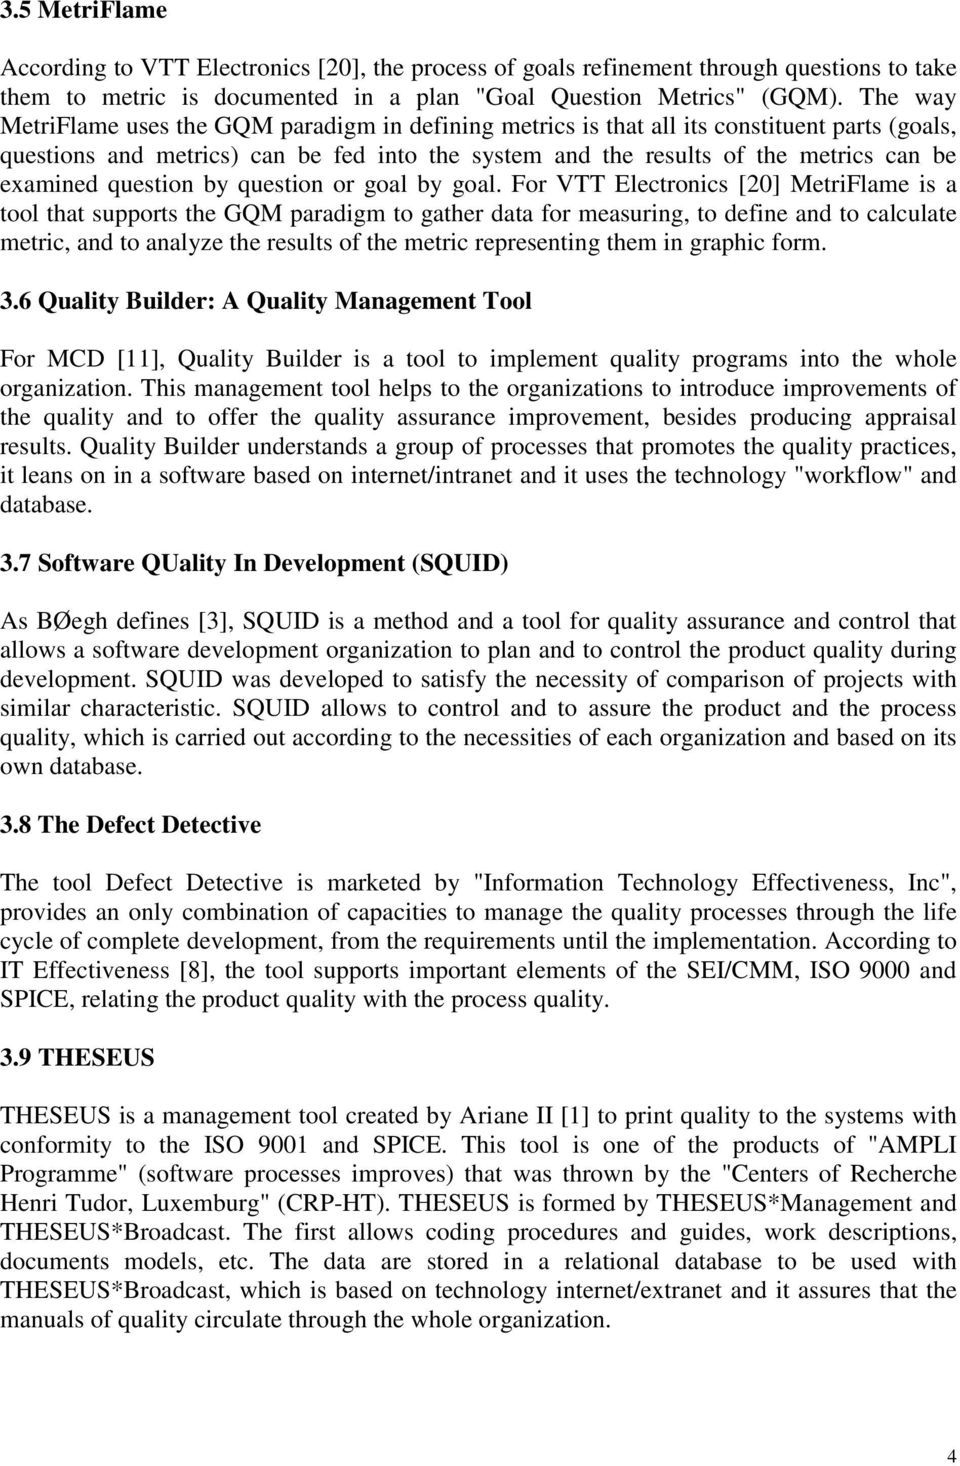 INDICATORS FOR SELECTING SOFTWARE QUALITY MANAGEMENT TOOLS 1